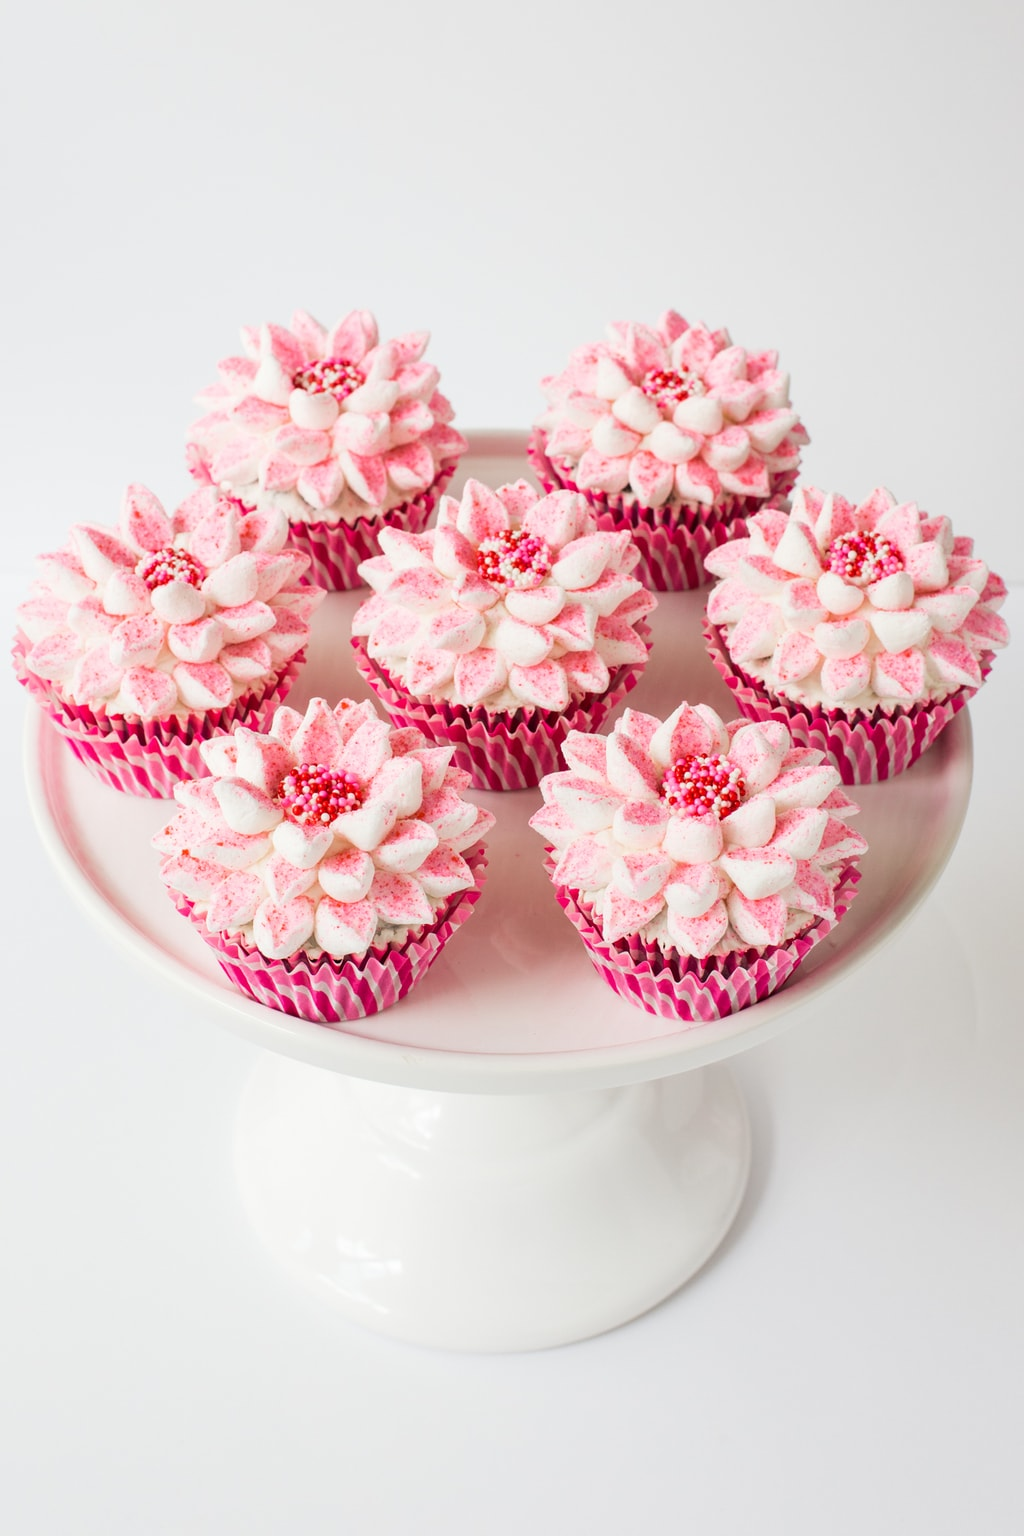 Easiest Best Ever Chocolate Cupcakes - the name says it all, and the marshmallow flower decorating technique makes them perfect for parties and celebrations! thecafesucrefarine.com